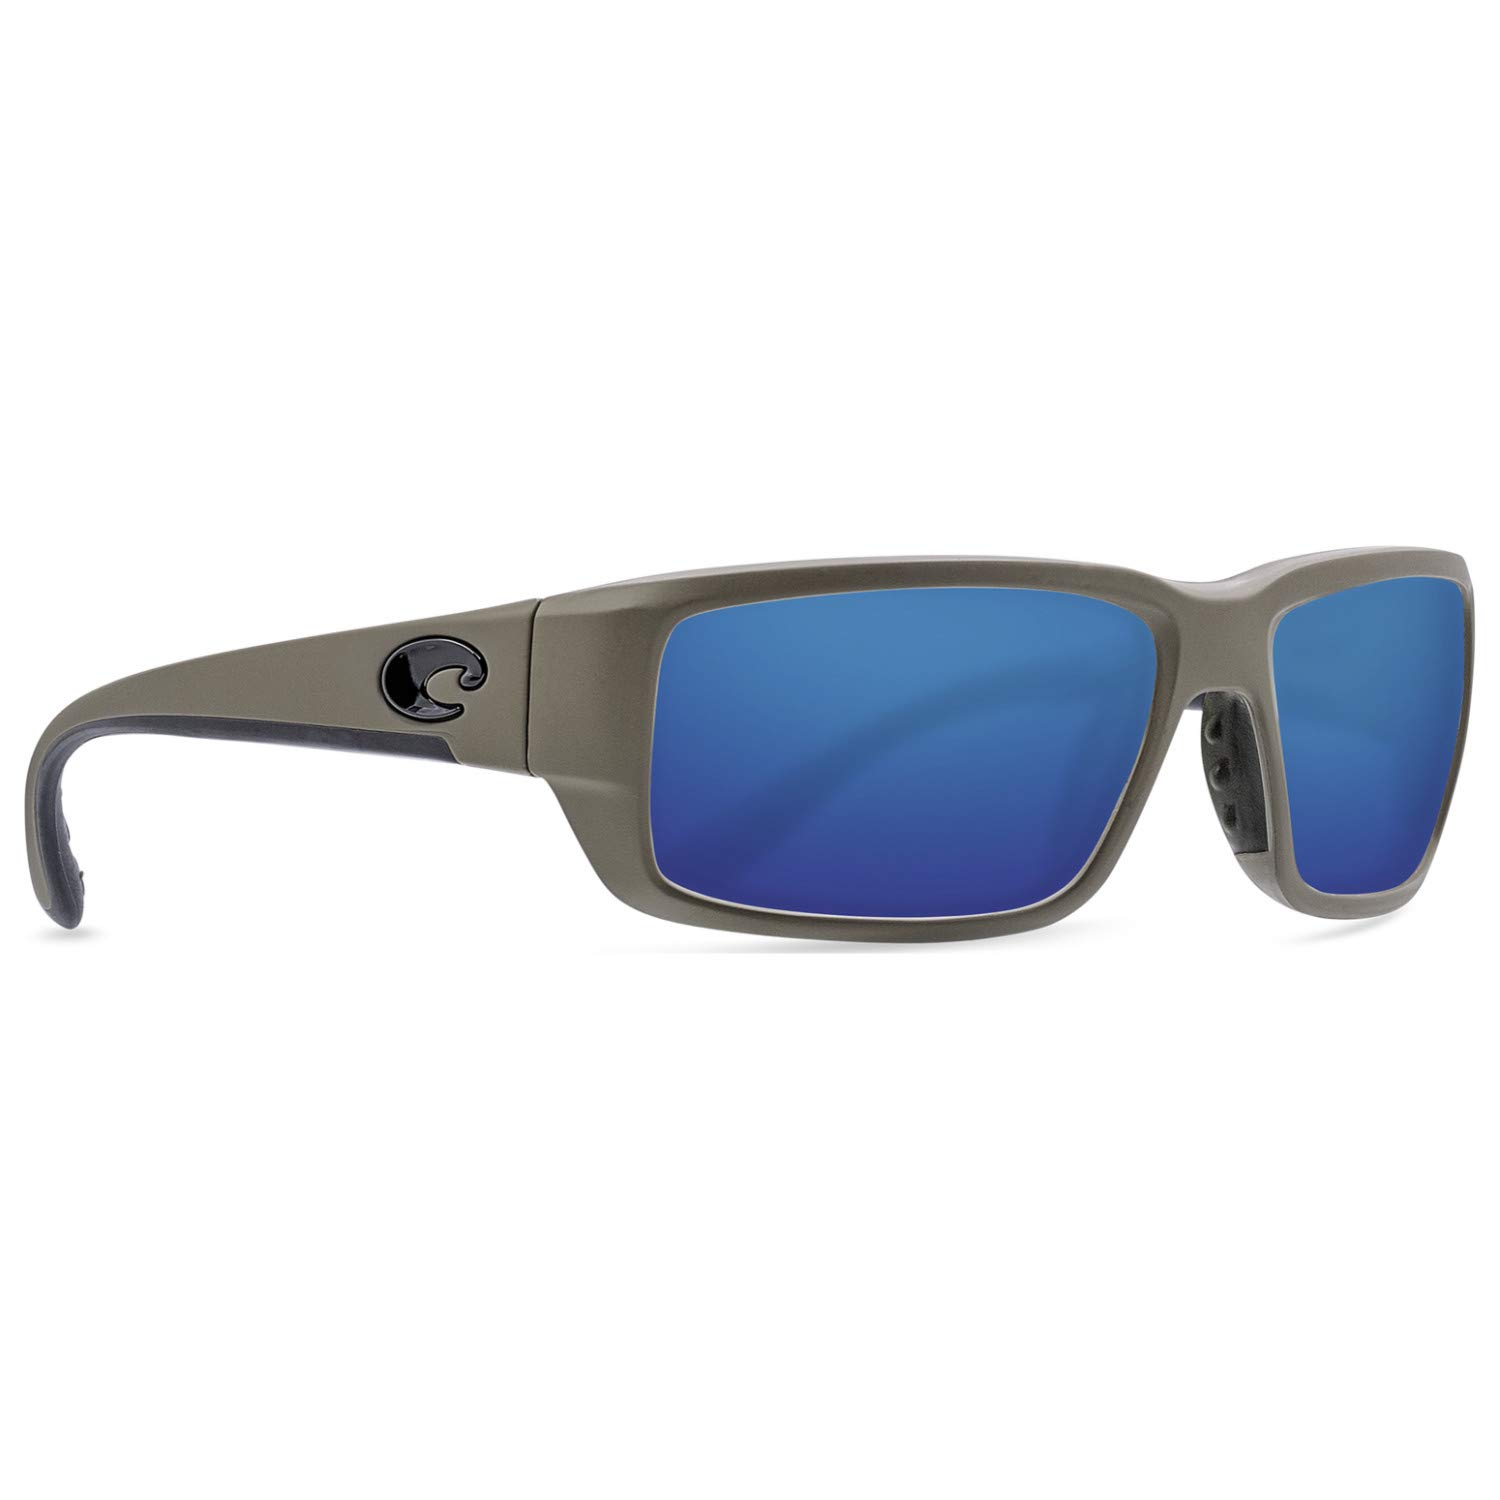 Costa Fantail Plastic Frame Blue Mirror Lens Men's Sunglasses TF198OBMGLP by Costa Del Mar